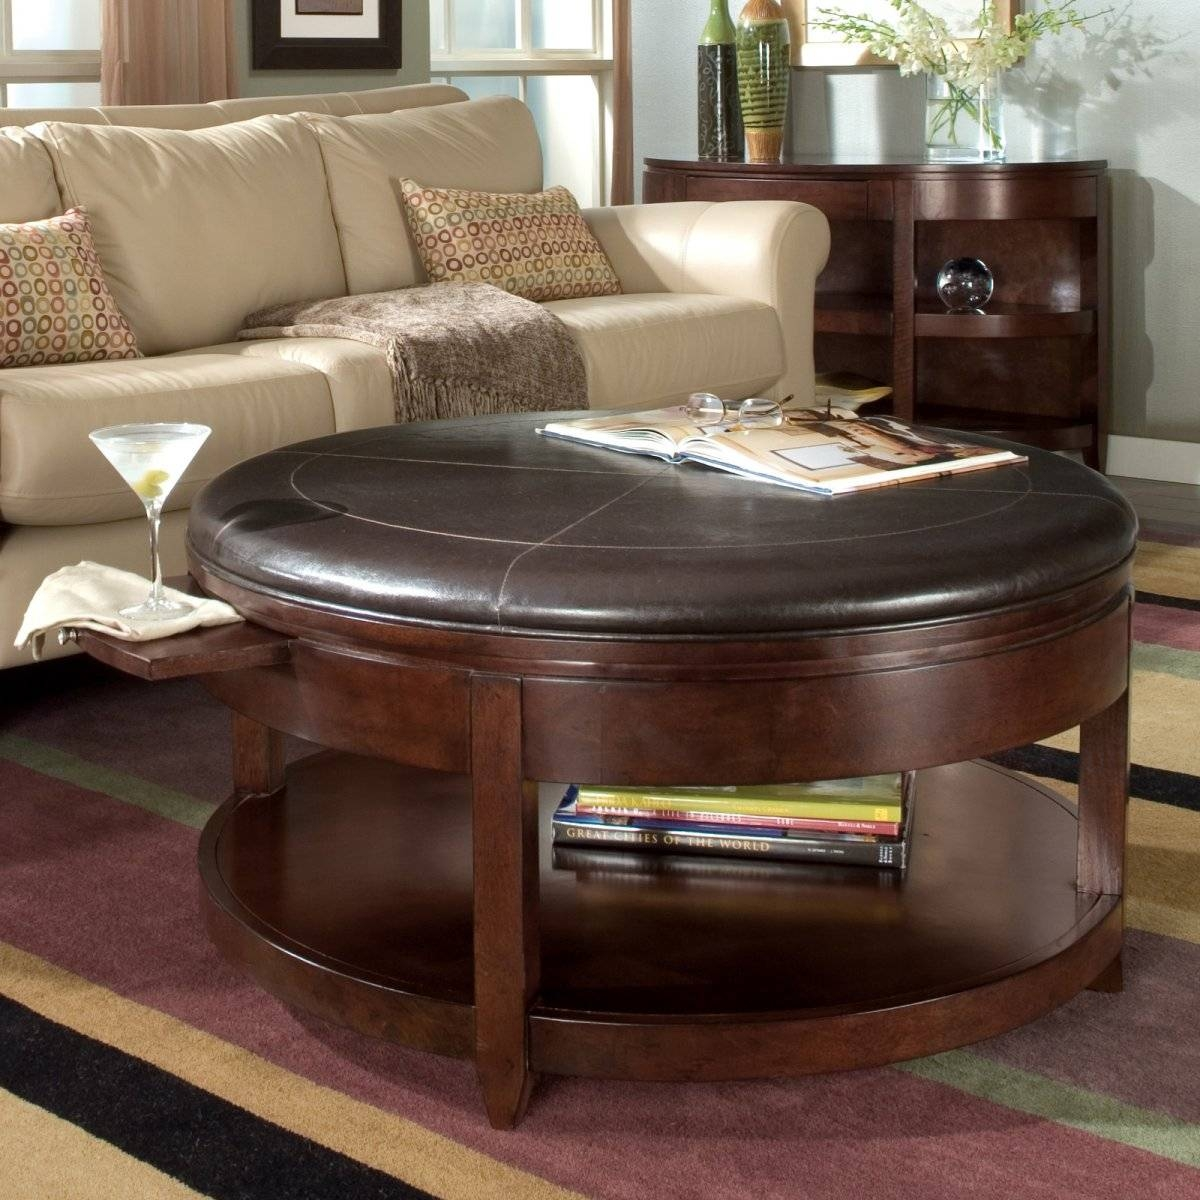 Choosing A Wonderful Oversized Coffee Table | Home Furniture And Decor With Regard To Oversized Round Coffee Tables (View 11 of 30)